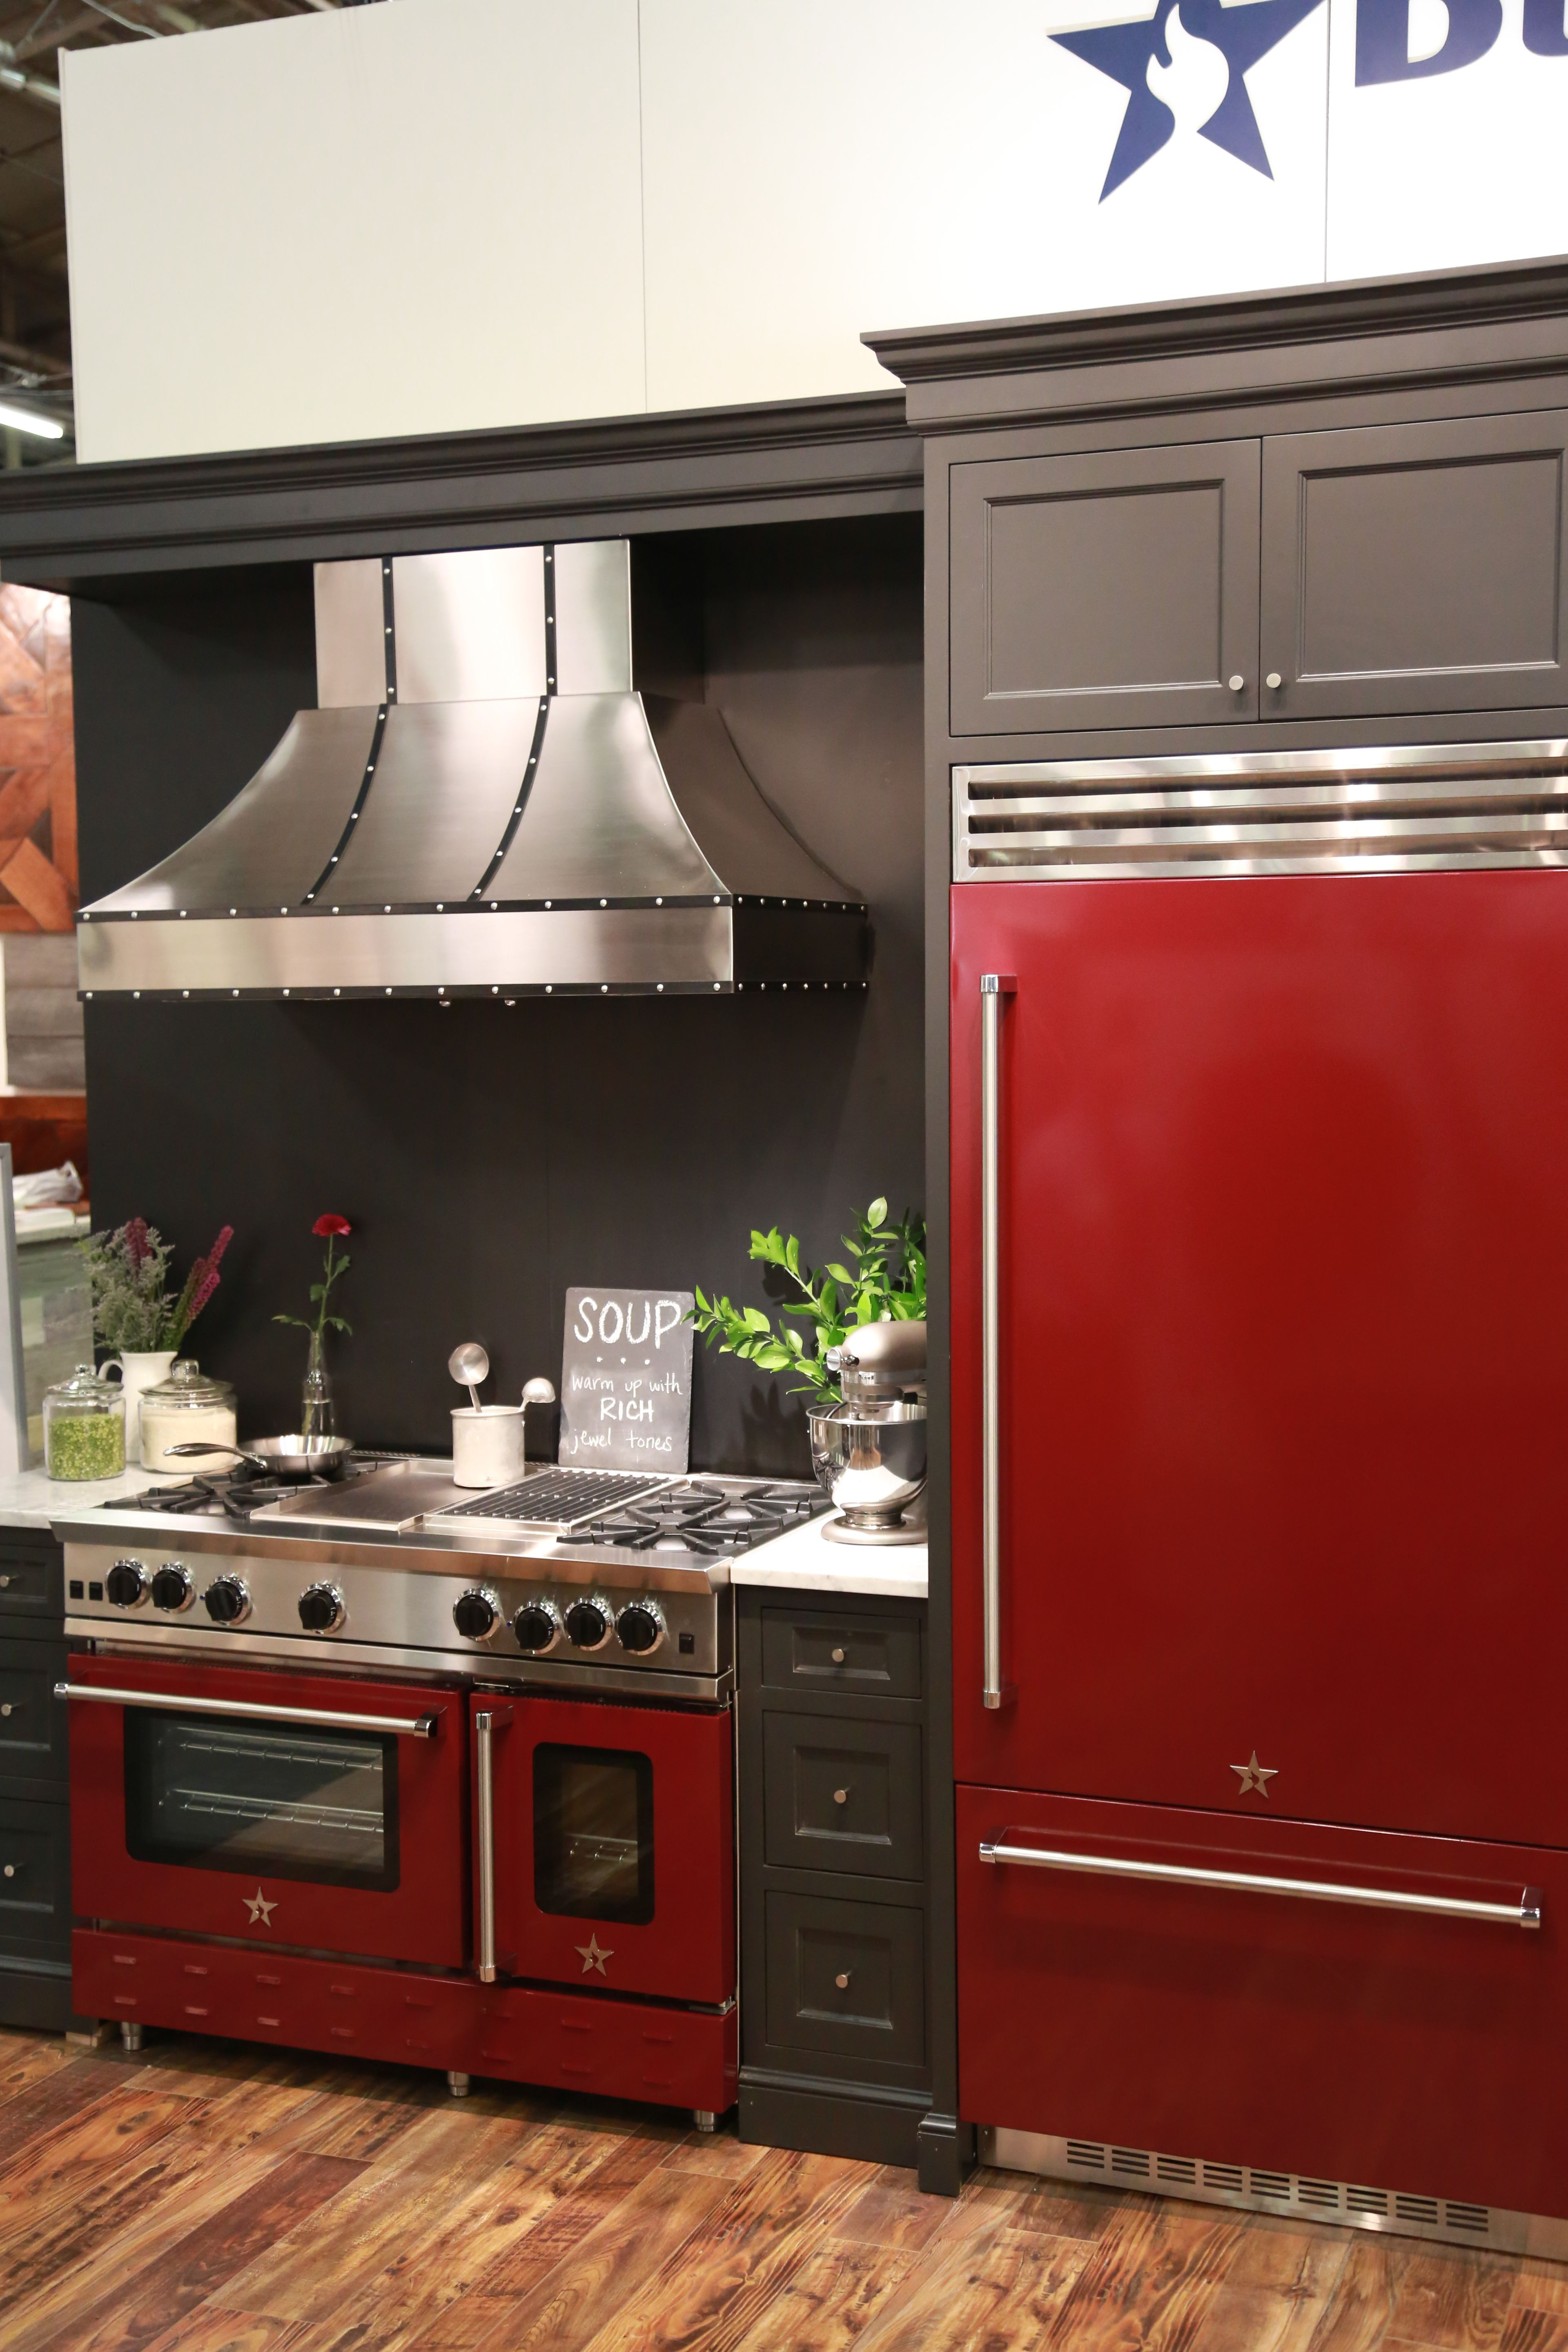 Installation of built-in hood: location options and installation instructions 93